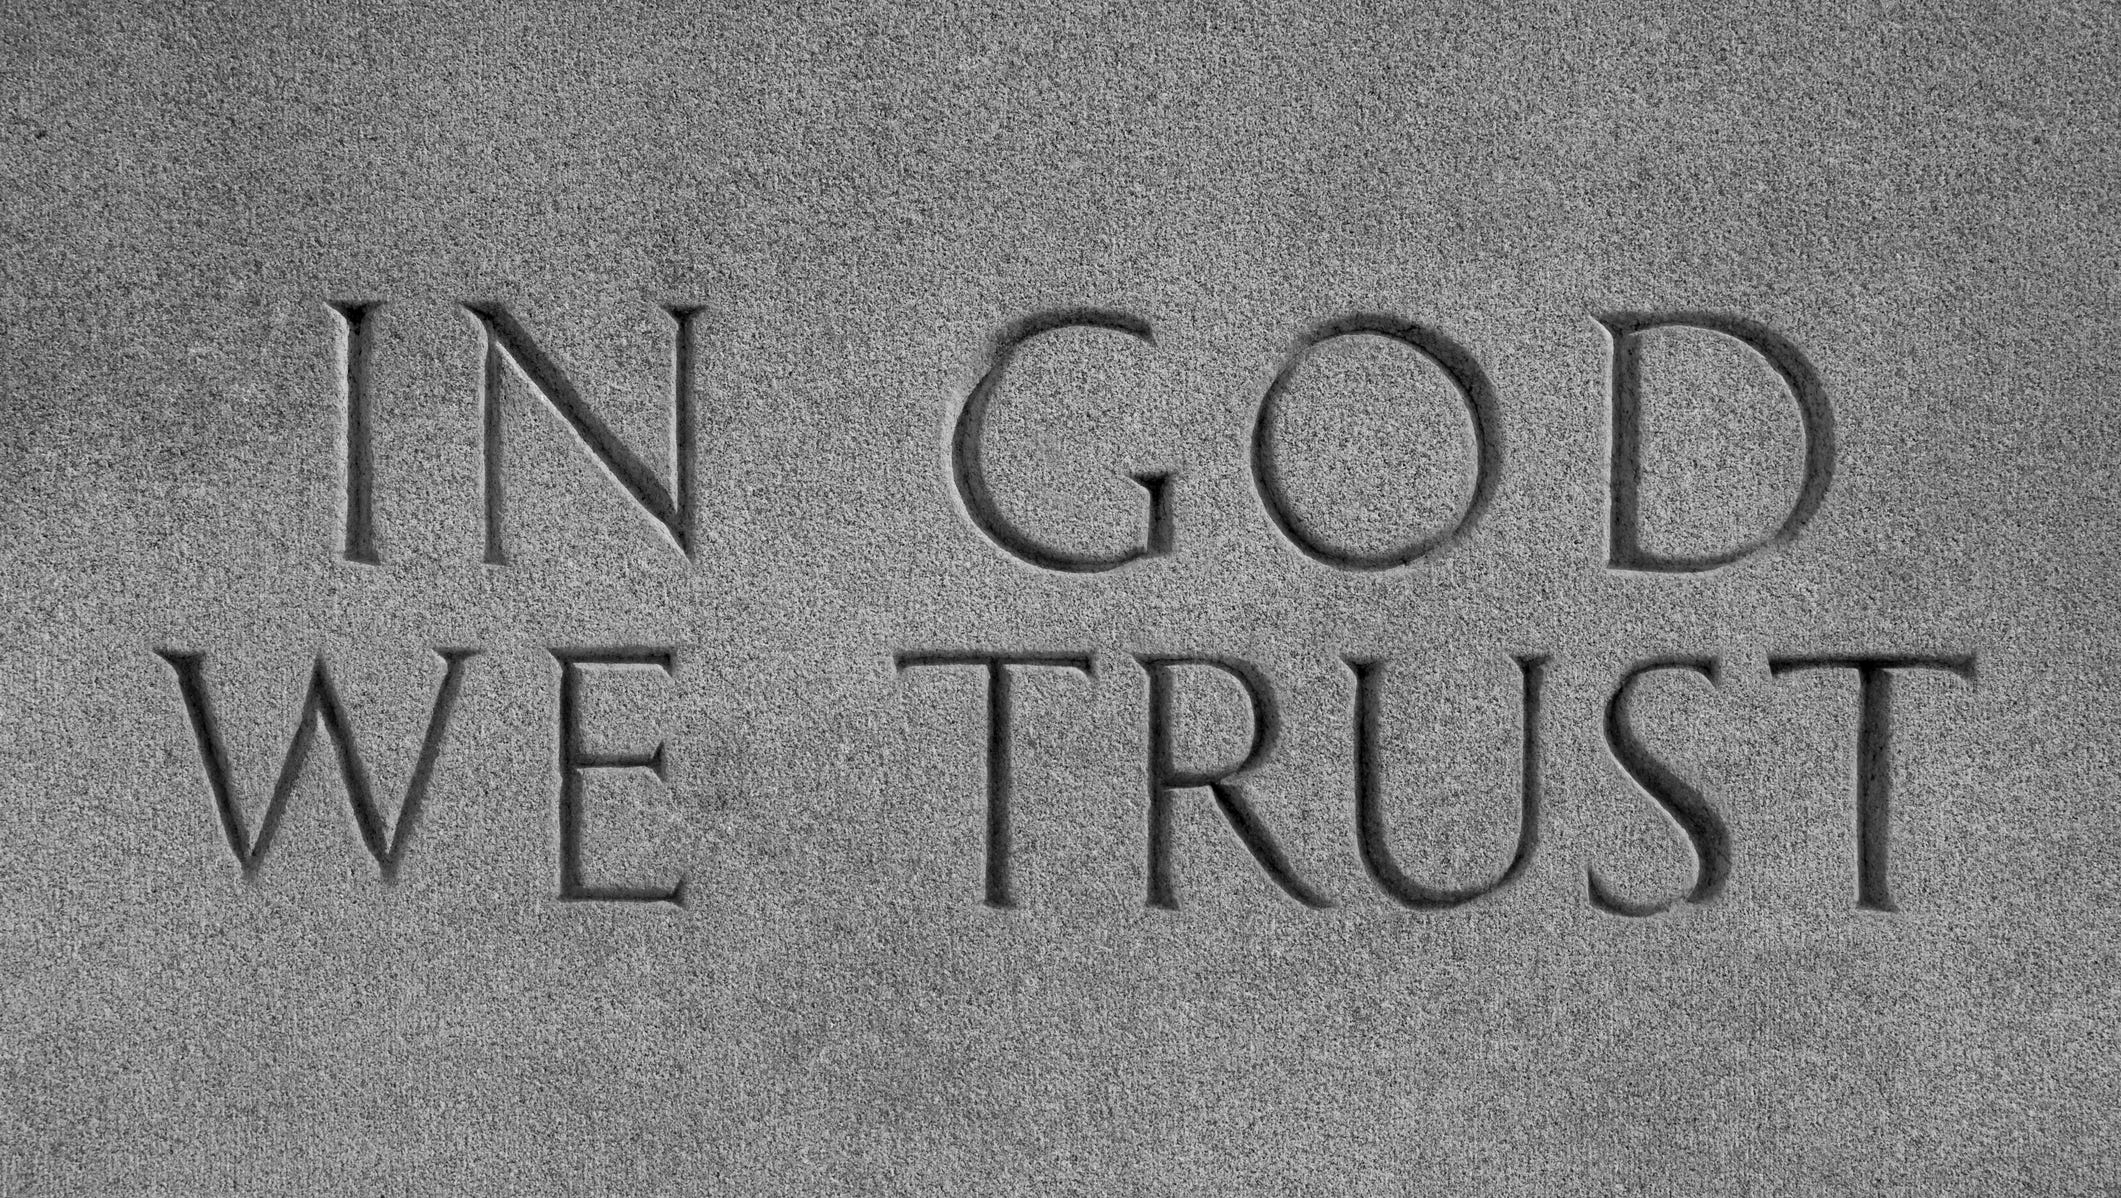 florida schools must display  u0026 39 in god we trust u0026 39  under house passed bill